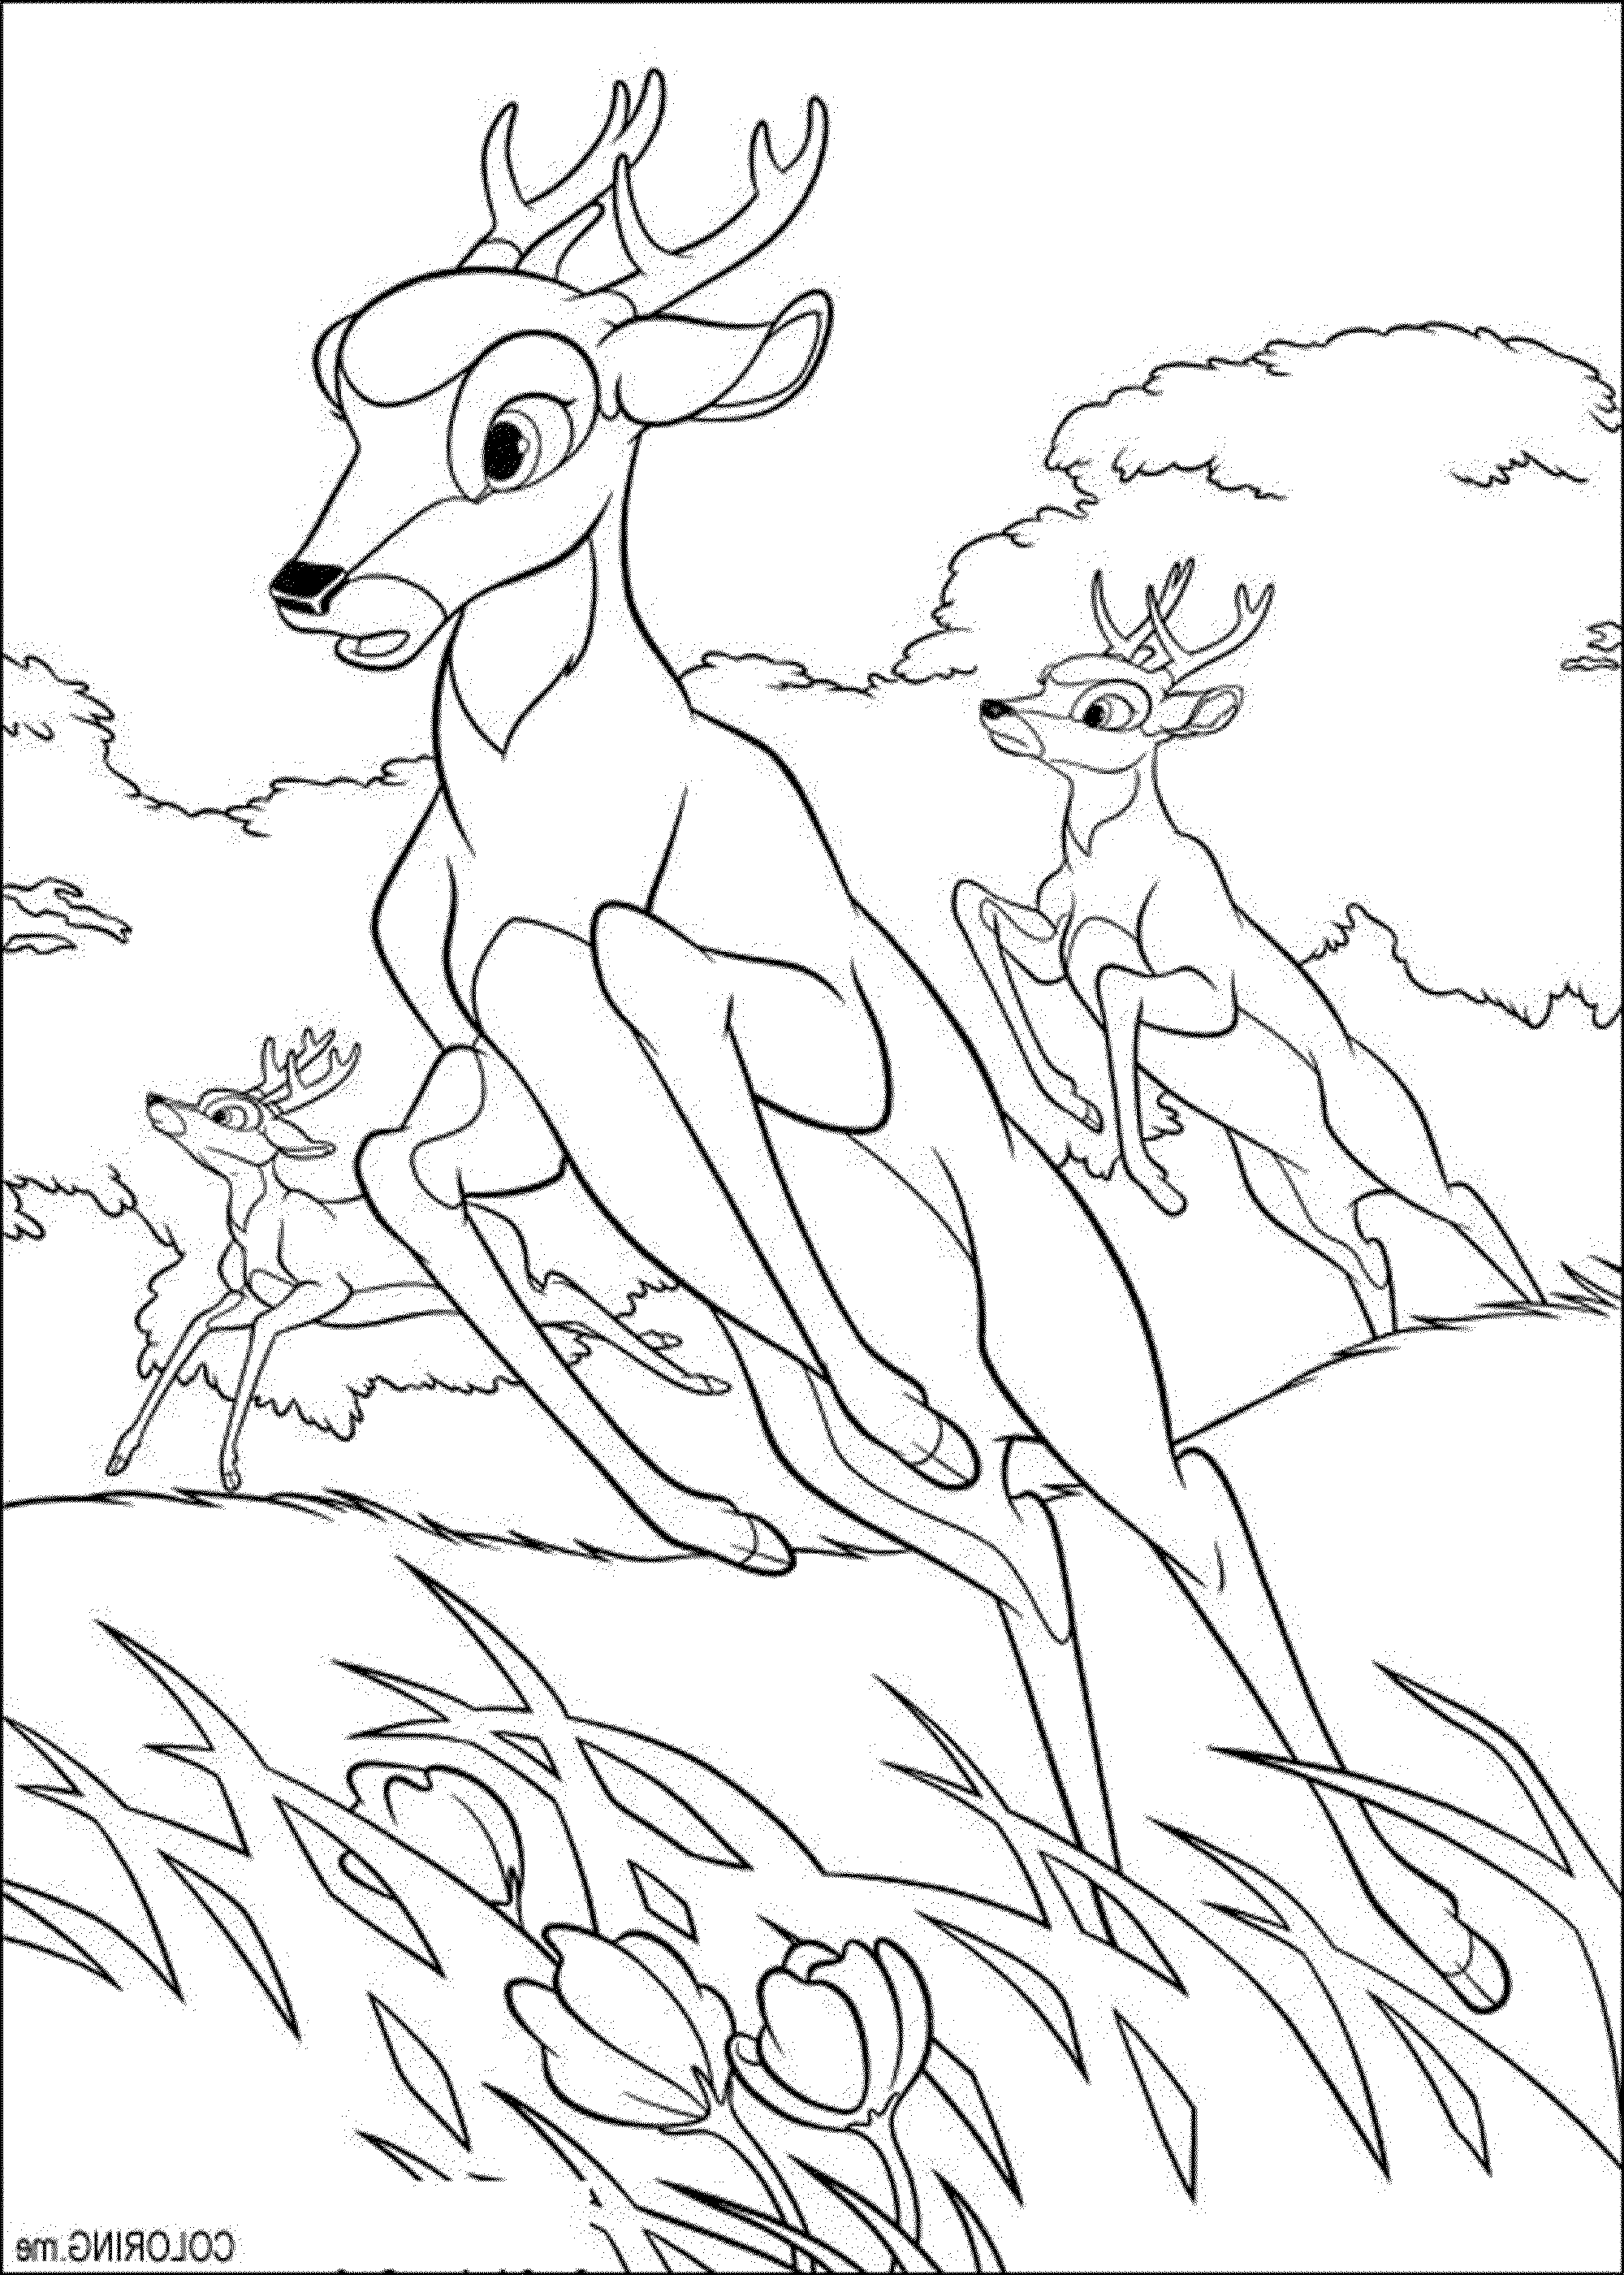 deer hunting coloring pages Deer coloring pages, Horse